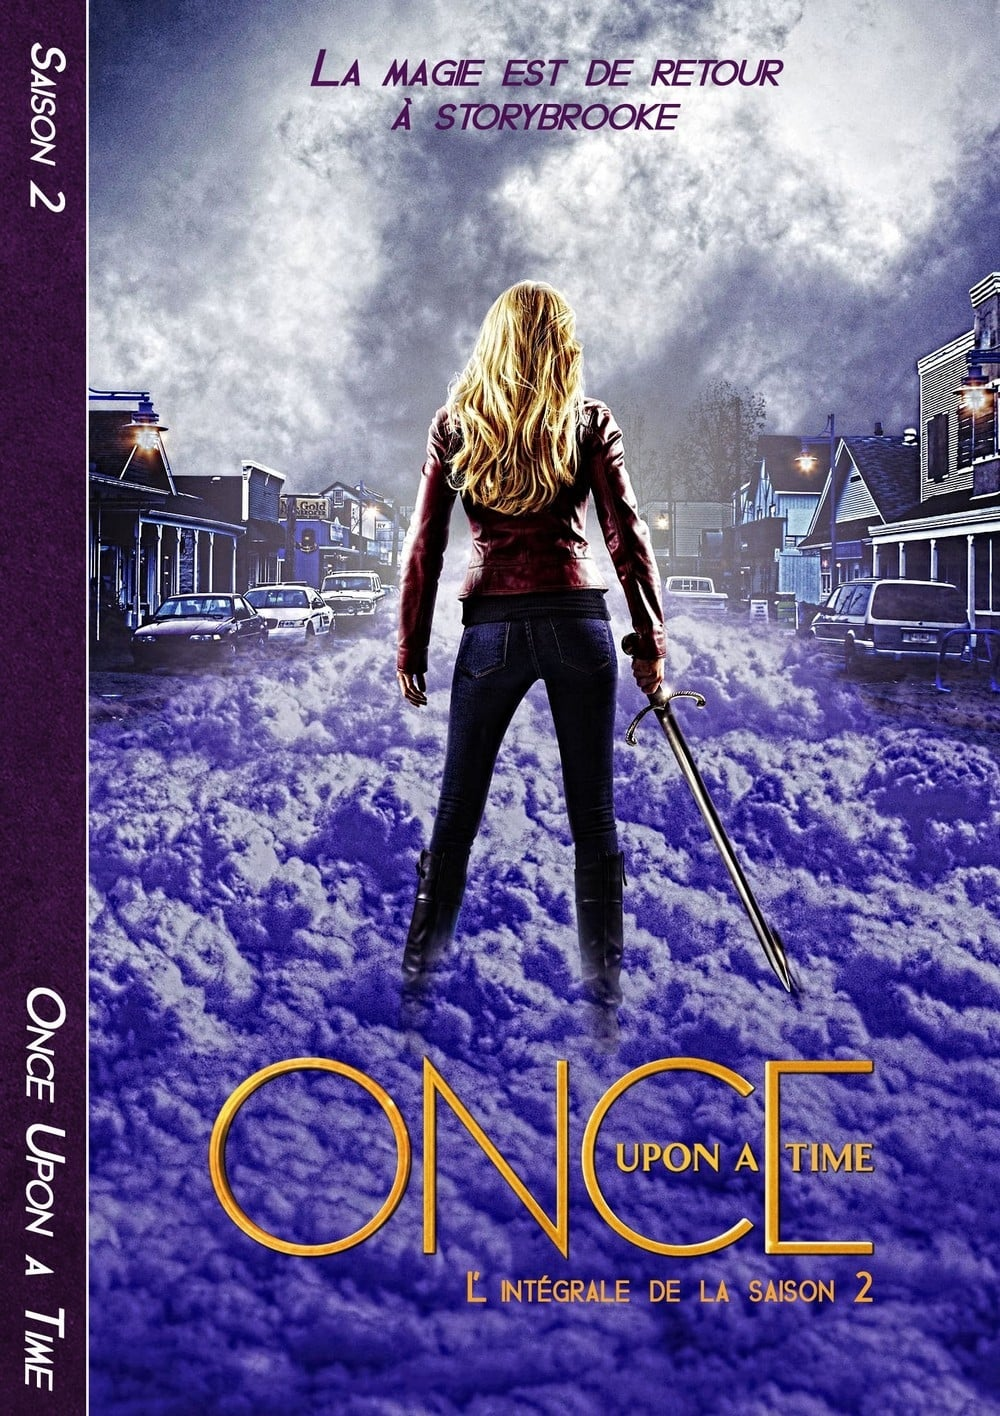 Once Upon A Time Streaming Sur Libertyland Serie 2012 Libertyland Libertyvf